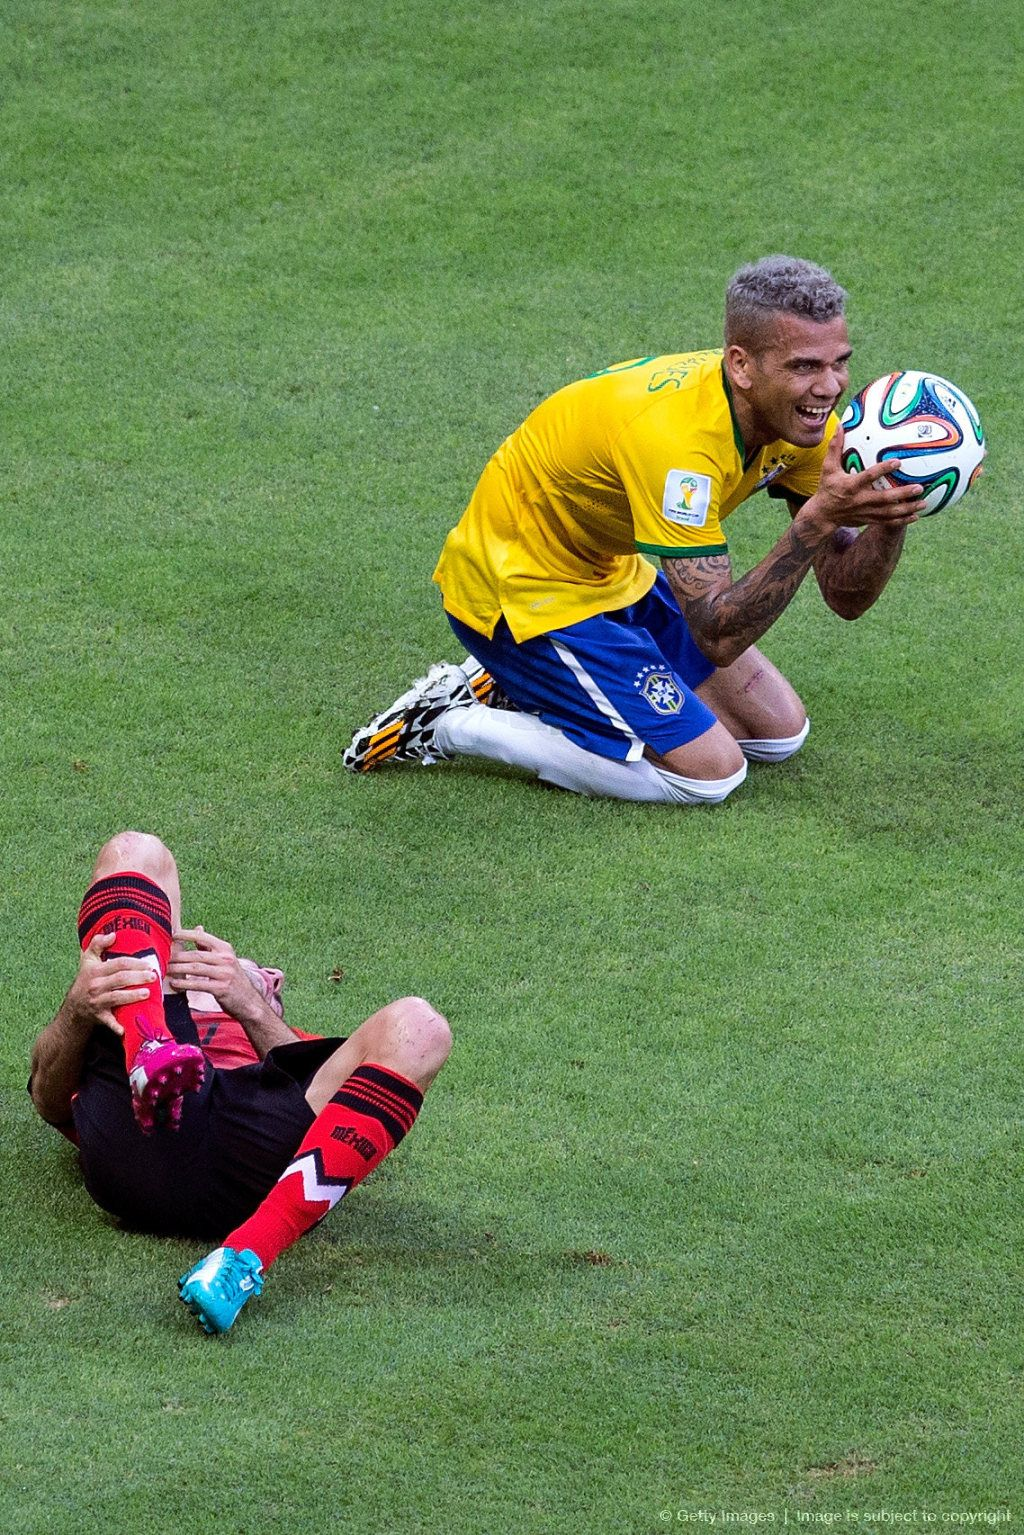 Brazil vs Mexico - Brazil 2014 World Cup (With images ...